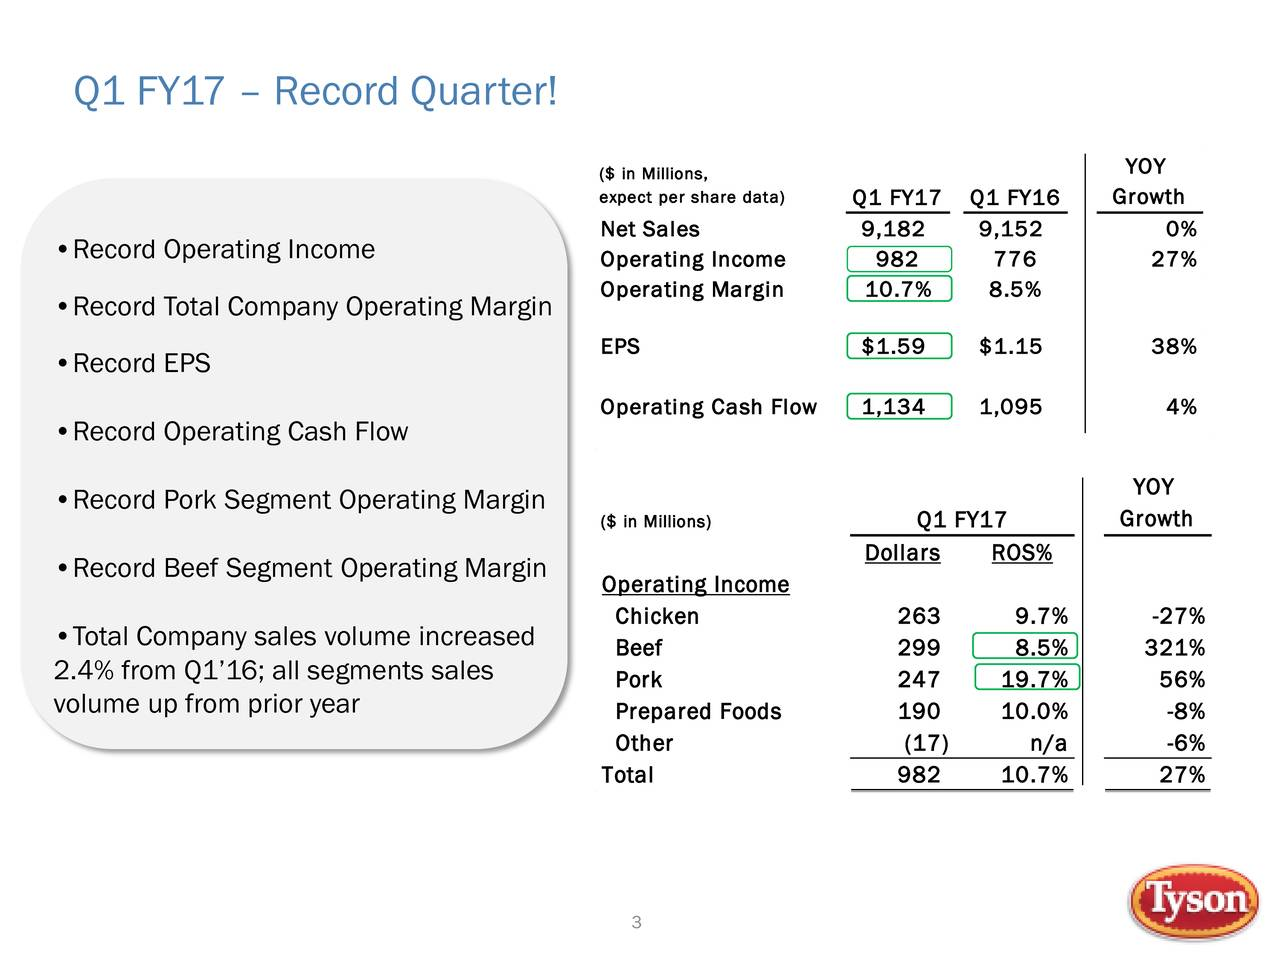 ($ in Millions, YOY expect per share dataQ1 FY17 Q1 FY16 Growth Net Sales 9,182 9,152 0% Record Operating Income Operating Income 982 776 27% Operating Margin 10.7% 8.5% Record Total Company Operating Margin EPS $1.59 $1.15 38% Record EPS Operating Cash Flow 1,134 1,095 4% Record Operating Cash Flow Record Pork Segment Operating Margin YOY ($ in Millions) Q1 FY17 Growth Record Beef Segment Operating Margin Dollars ROS% Operating Income Chicken 263 9.7% -27% Total Company sales volume increased Beef 299 8.5% 321% 2.4% from Q116; all segments sales Pork 247 19.7% 56% volume up from prior year Prepared Foods 190 10.0% -8% Other (17) n/a -6% Total 982 10.7% 27% 3